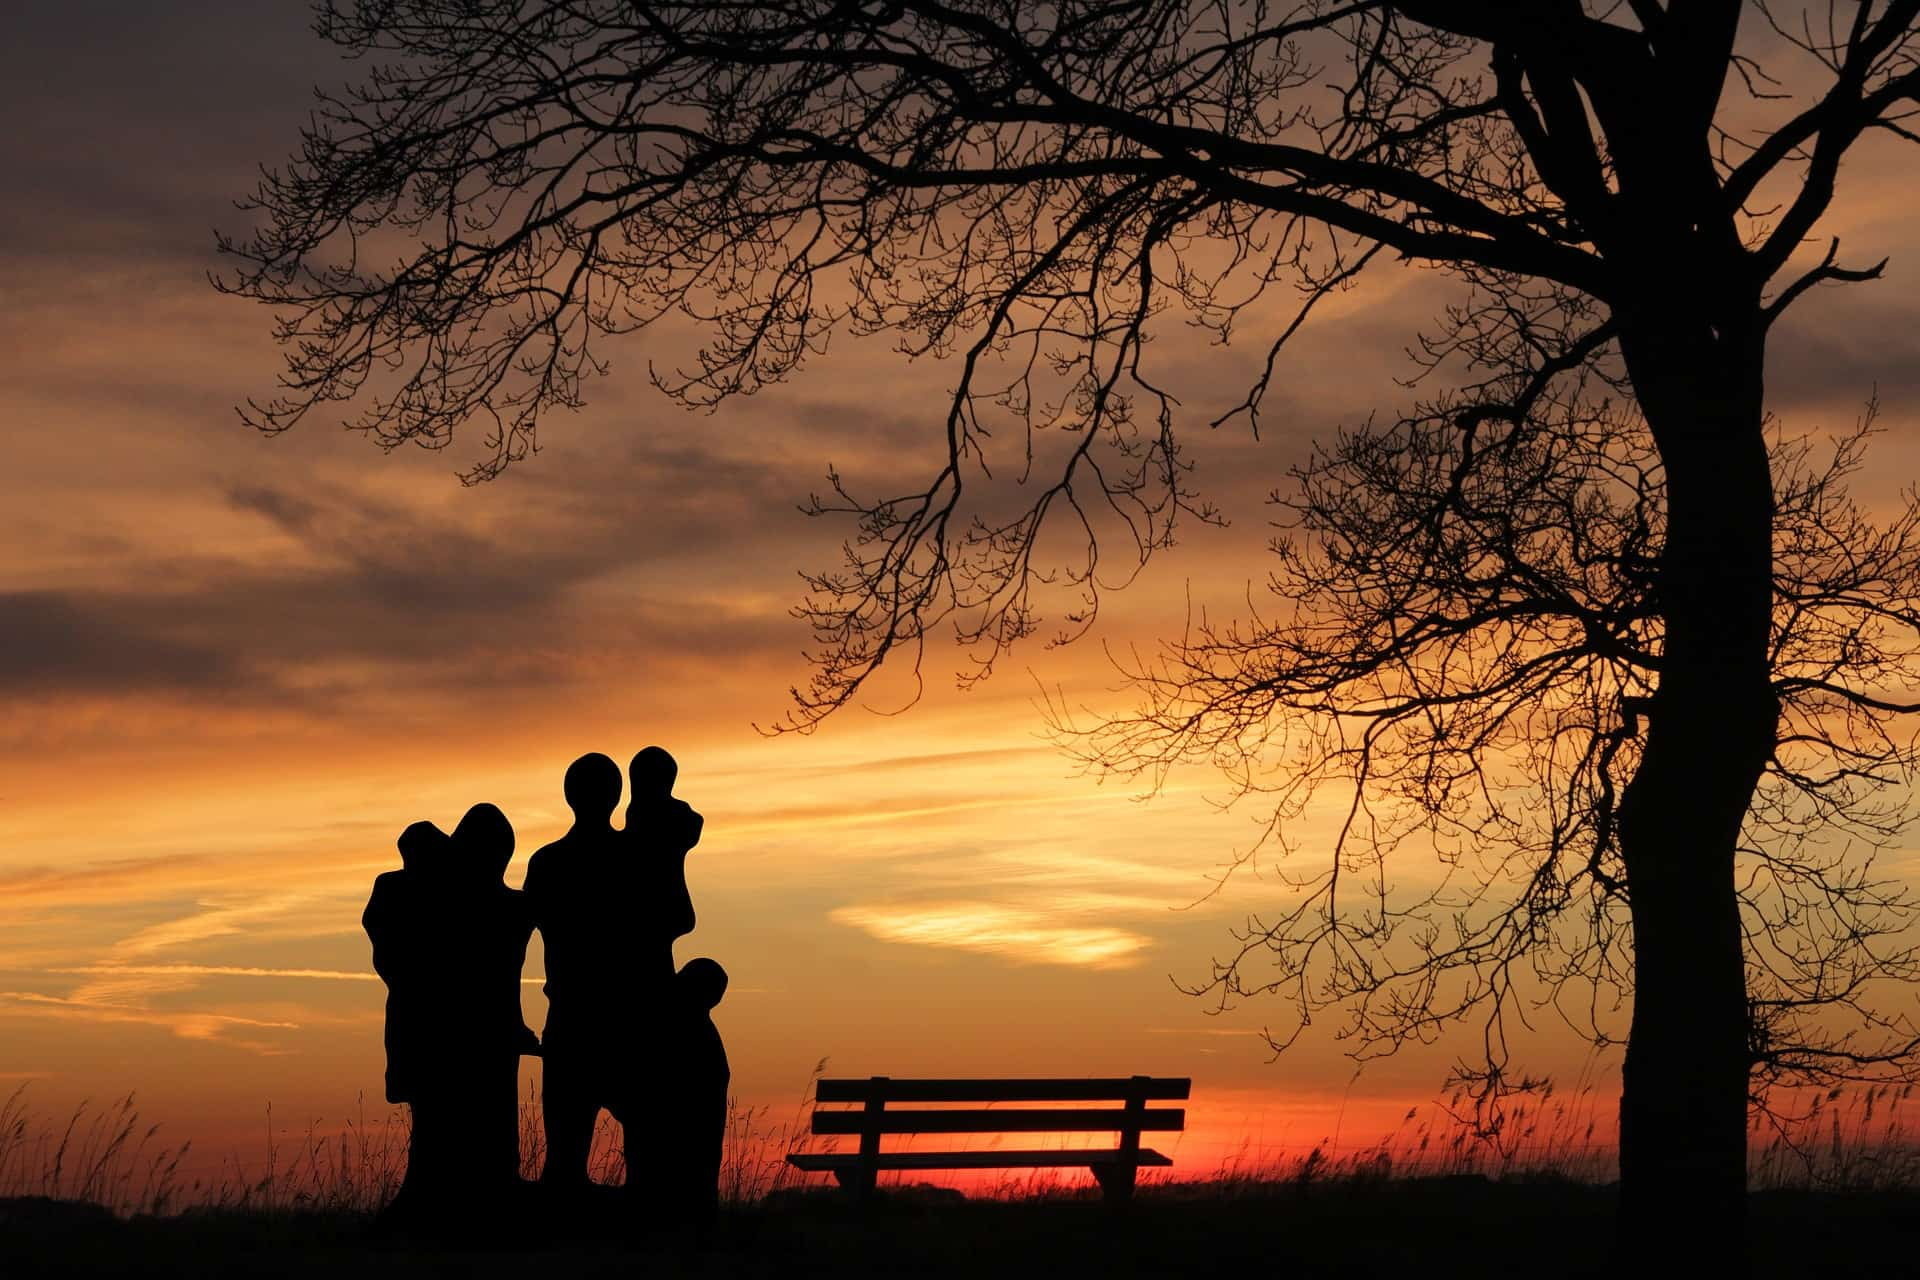 Sunset and a family enjoying the view